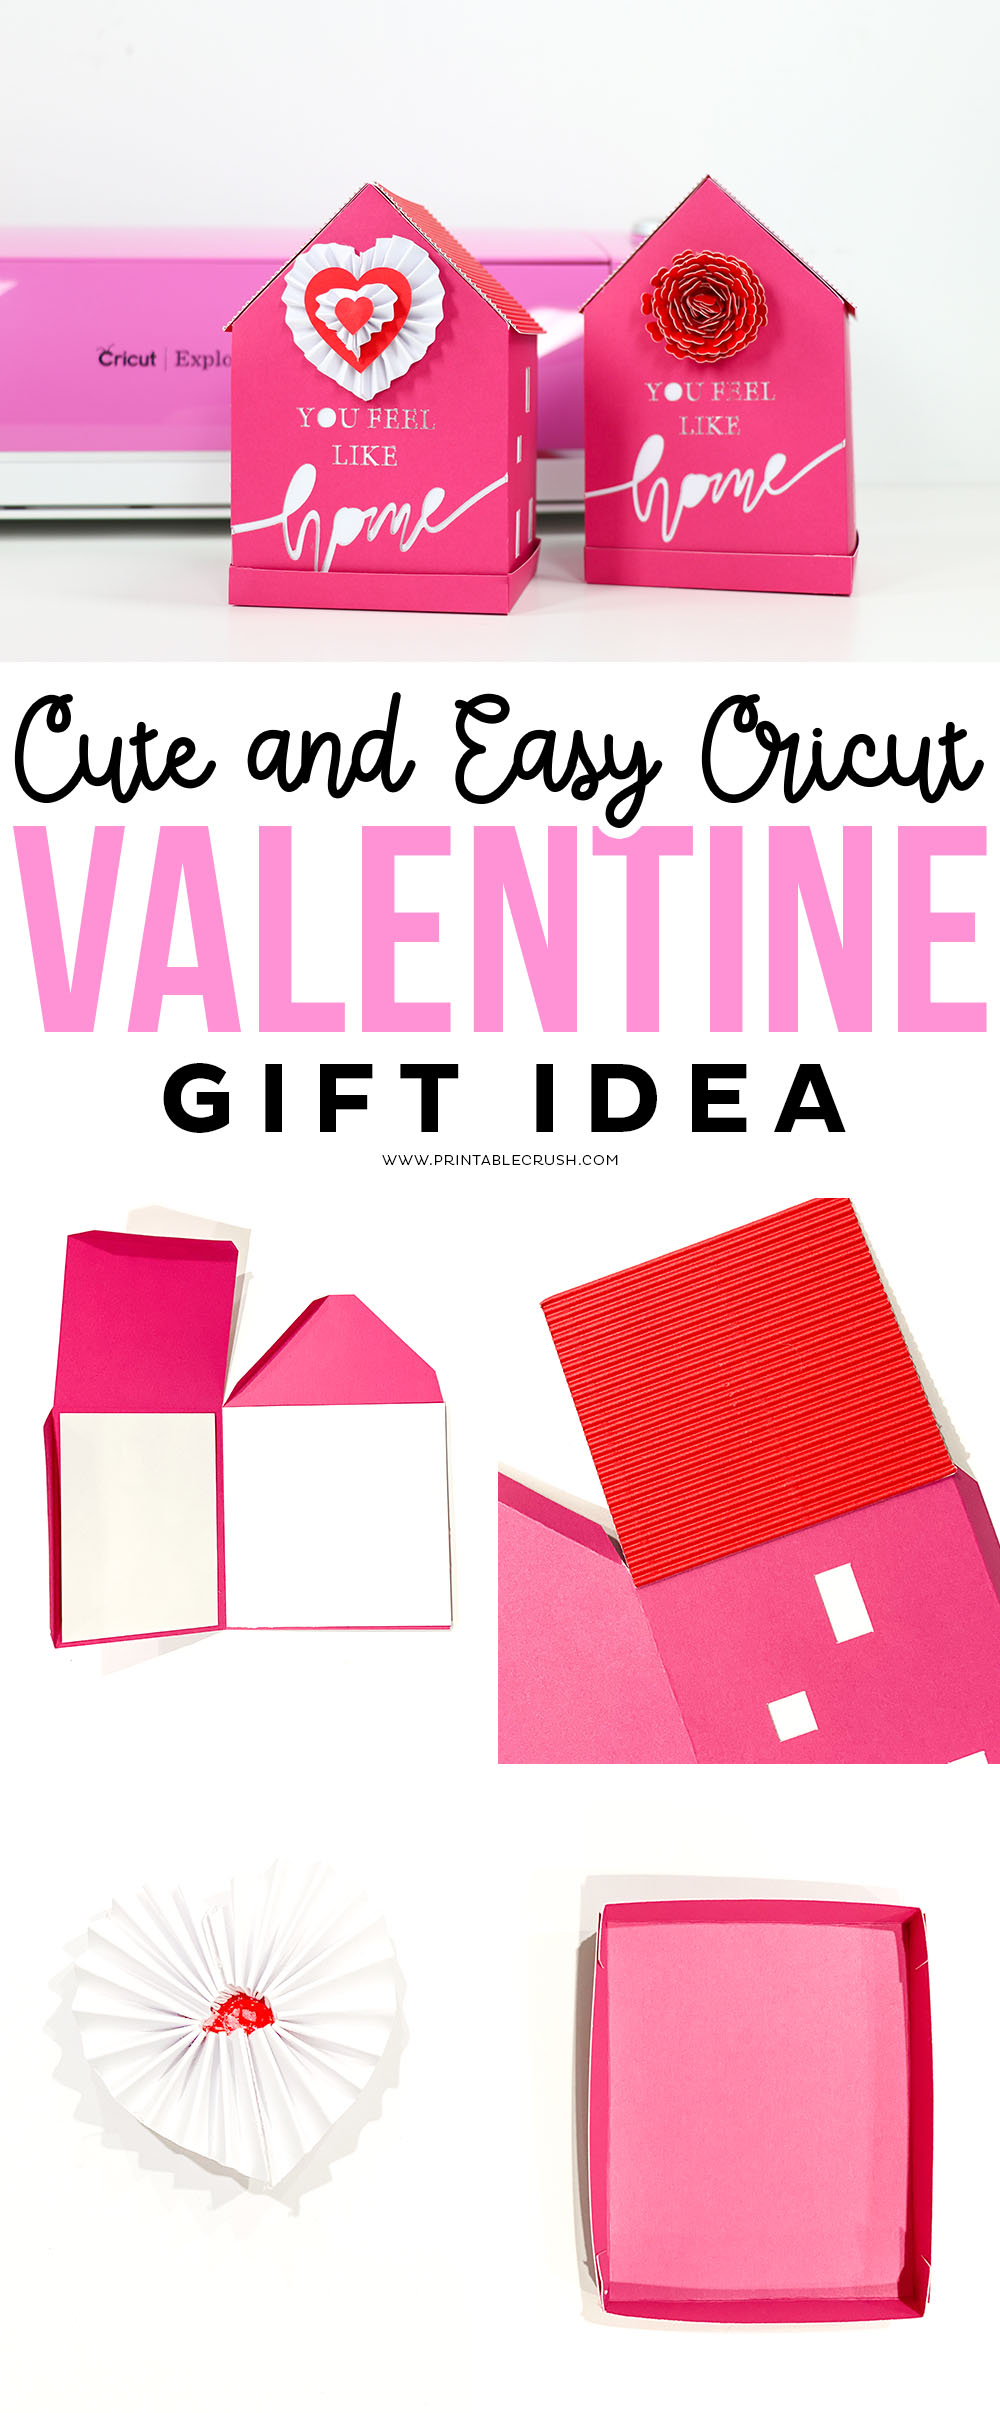 """You Feel Like Home"" Cute and Easy Cricut Valentine's Day Gift Idea"